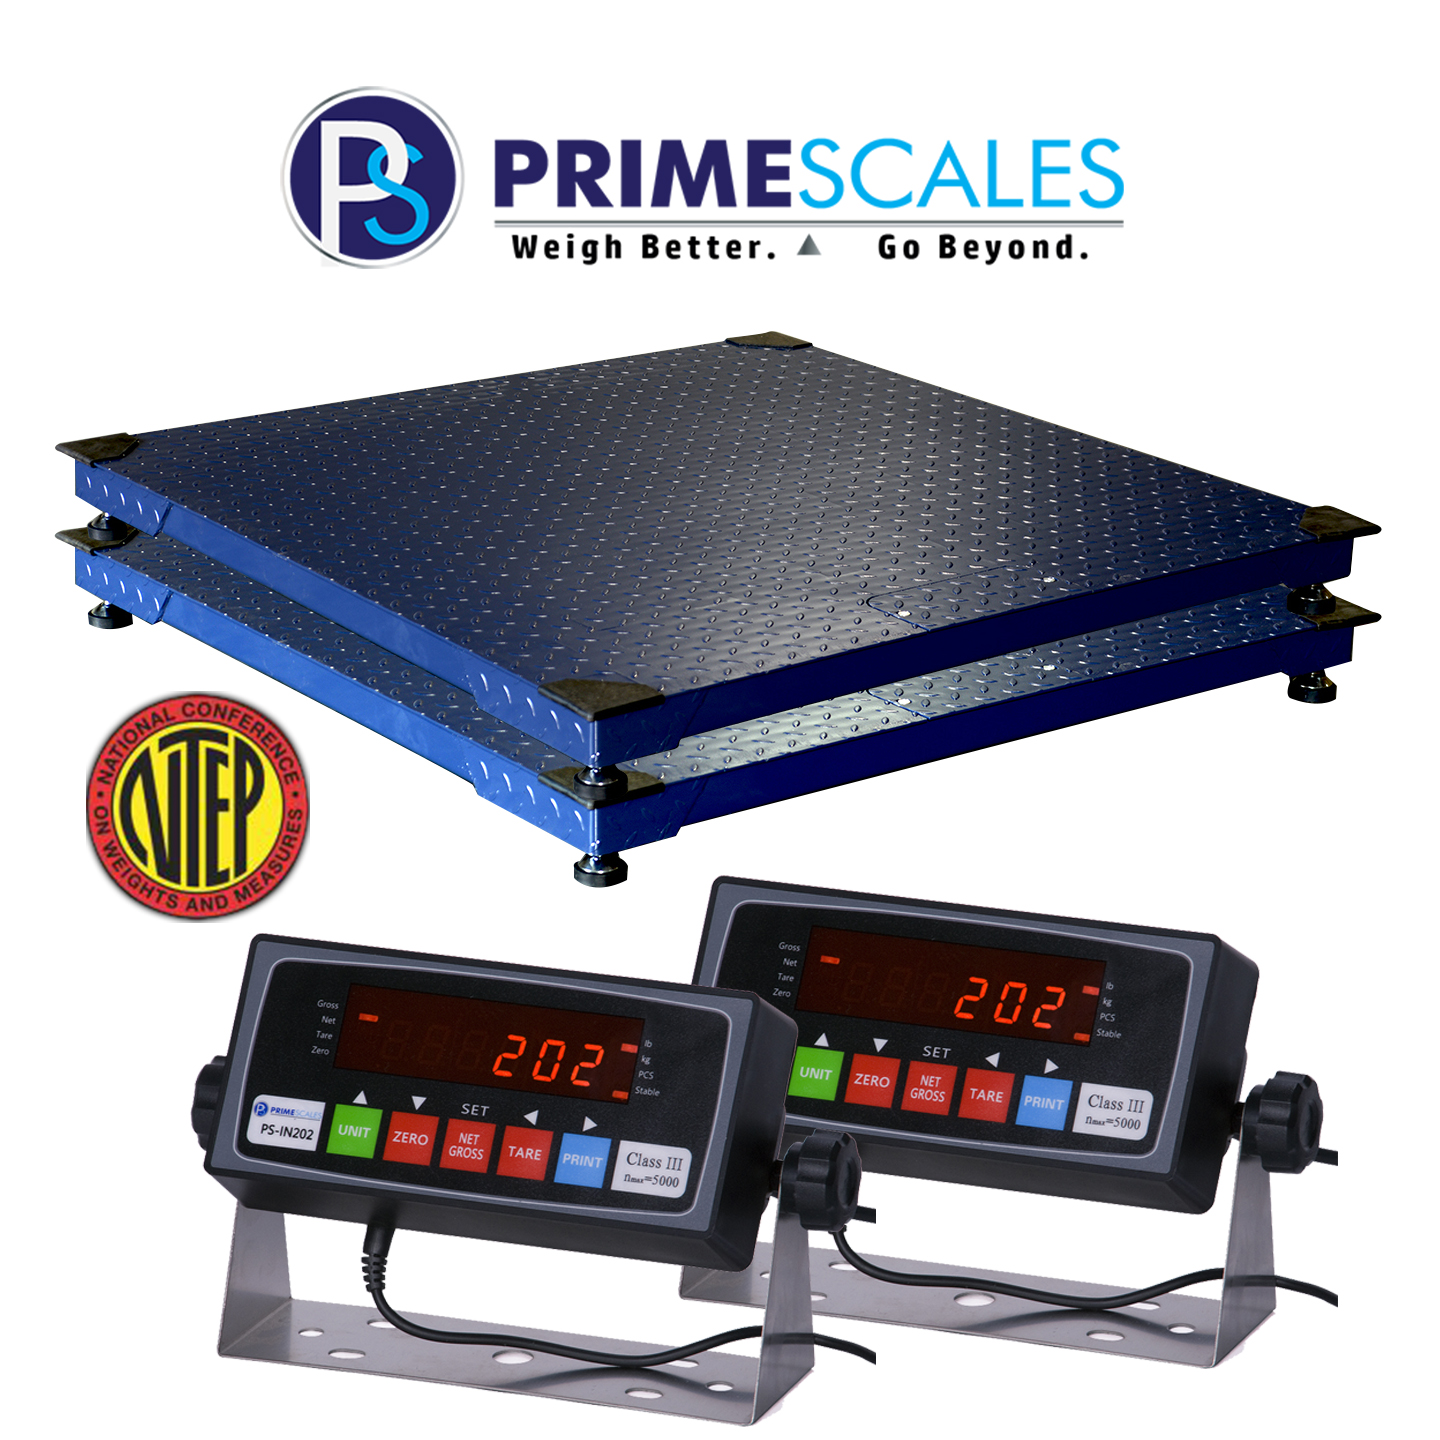 Prime Scales 4x4 Feet 1000?0.2lb My Scale FW4x4 Heavy Duty Legal For Trade (NTEP) Floor Scale + PSIN202 Indicator - Pack of 02